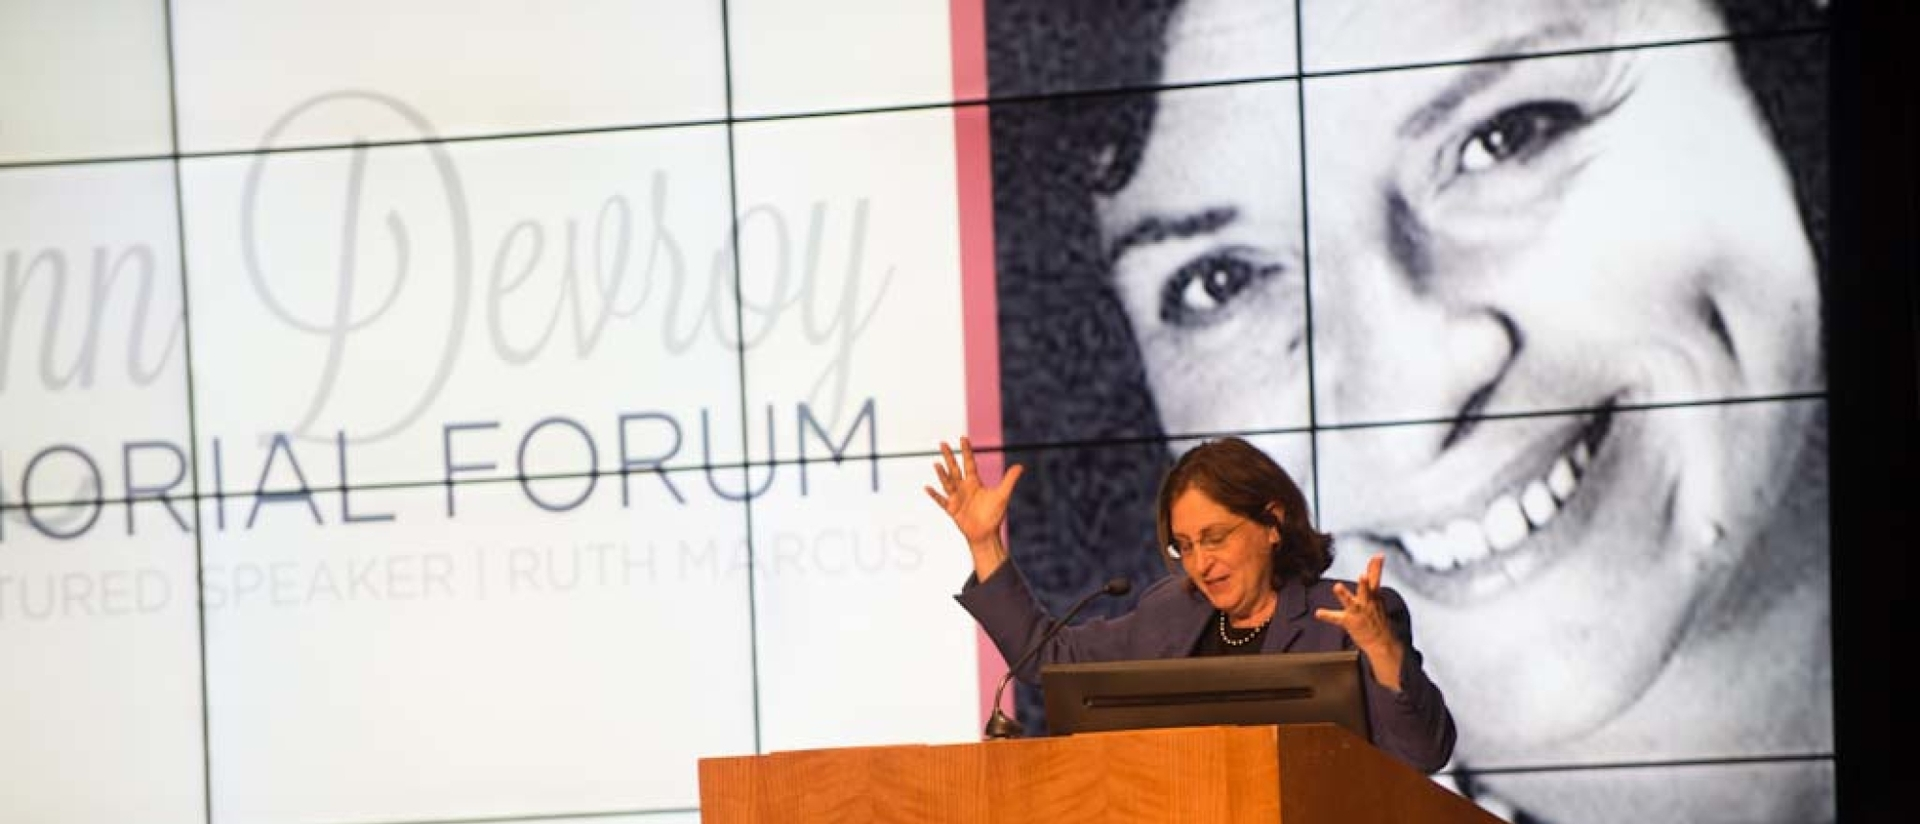 Ruth Marcus presenting at the Ann Devroy Memorial Forum